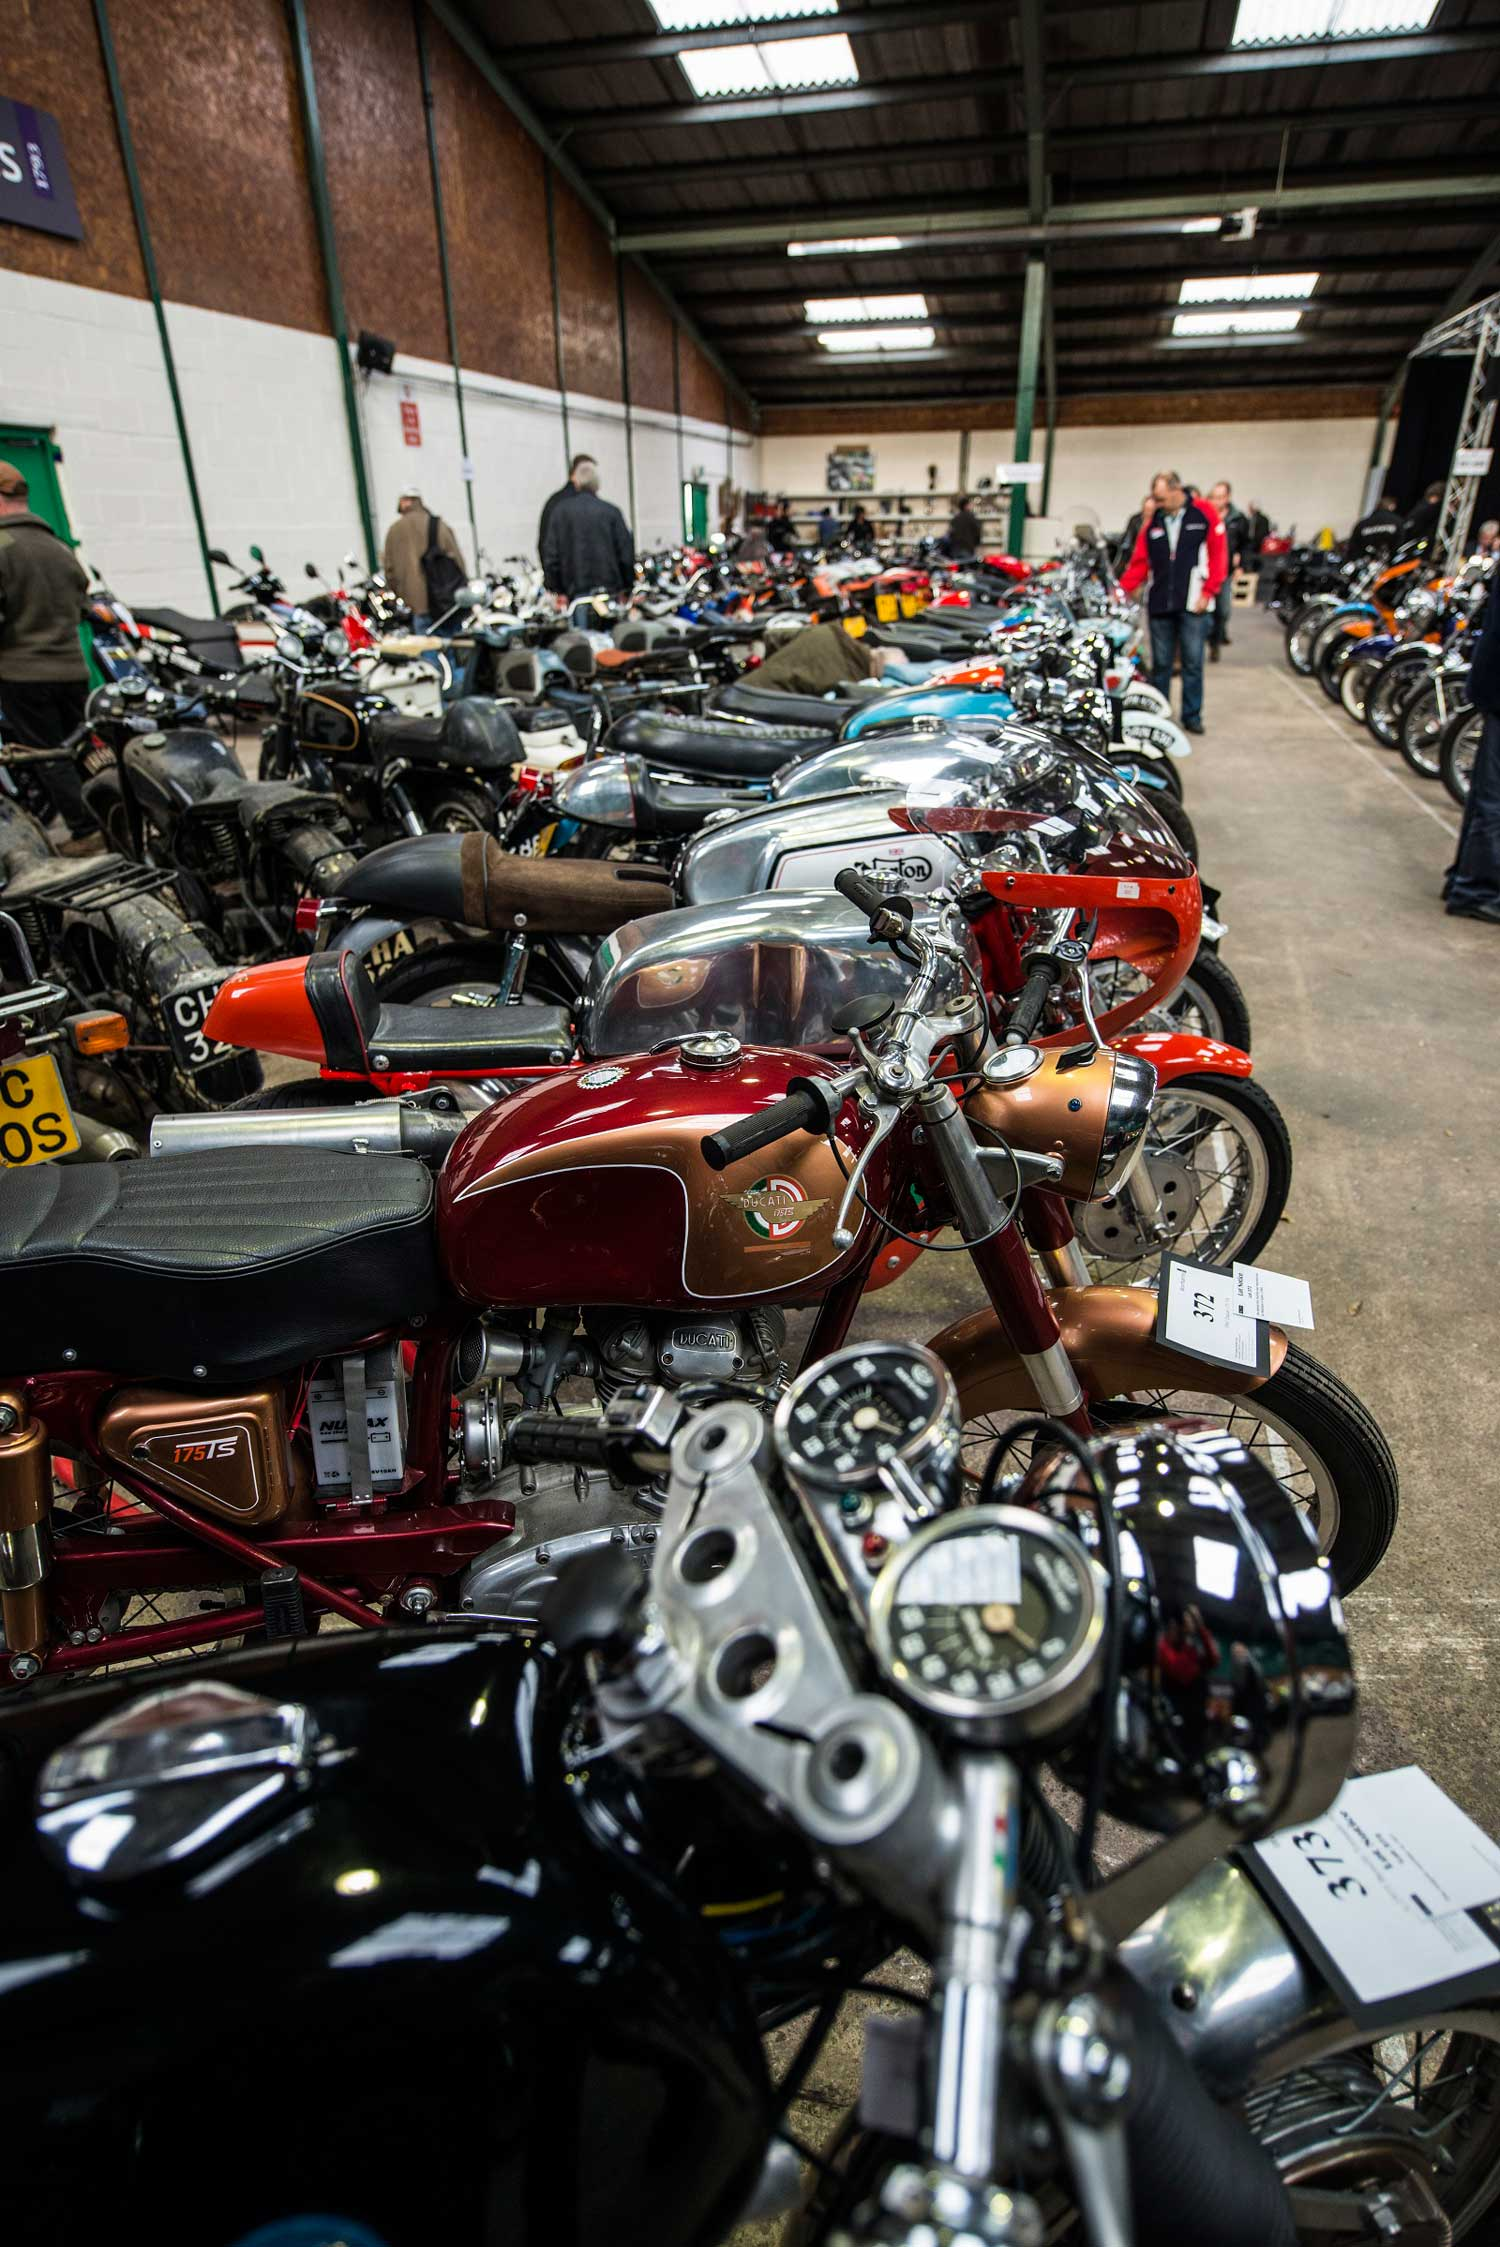 The-Carole-Nash-Classic-Motorcycle-Mechanics-Show.-Credit---Leanne-Mandall